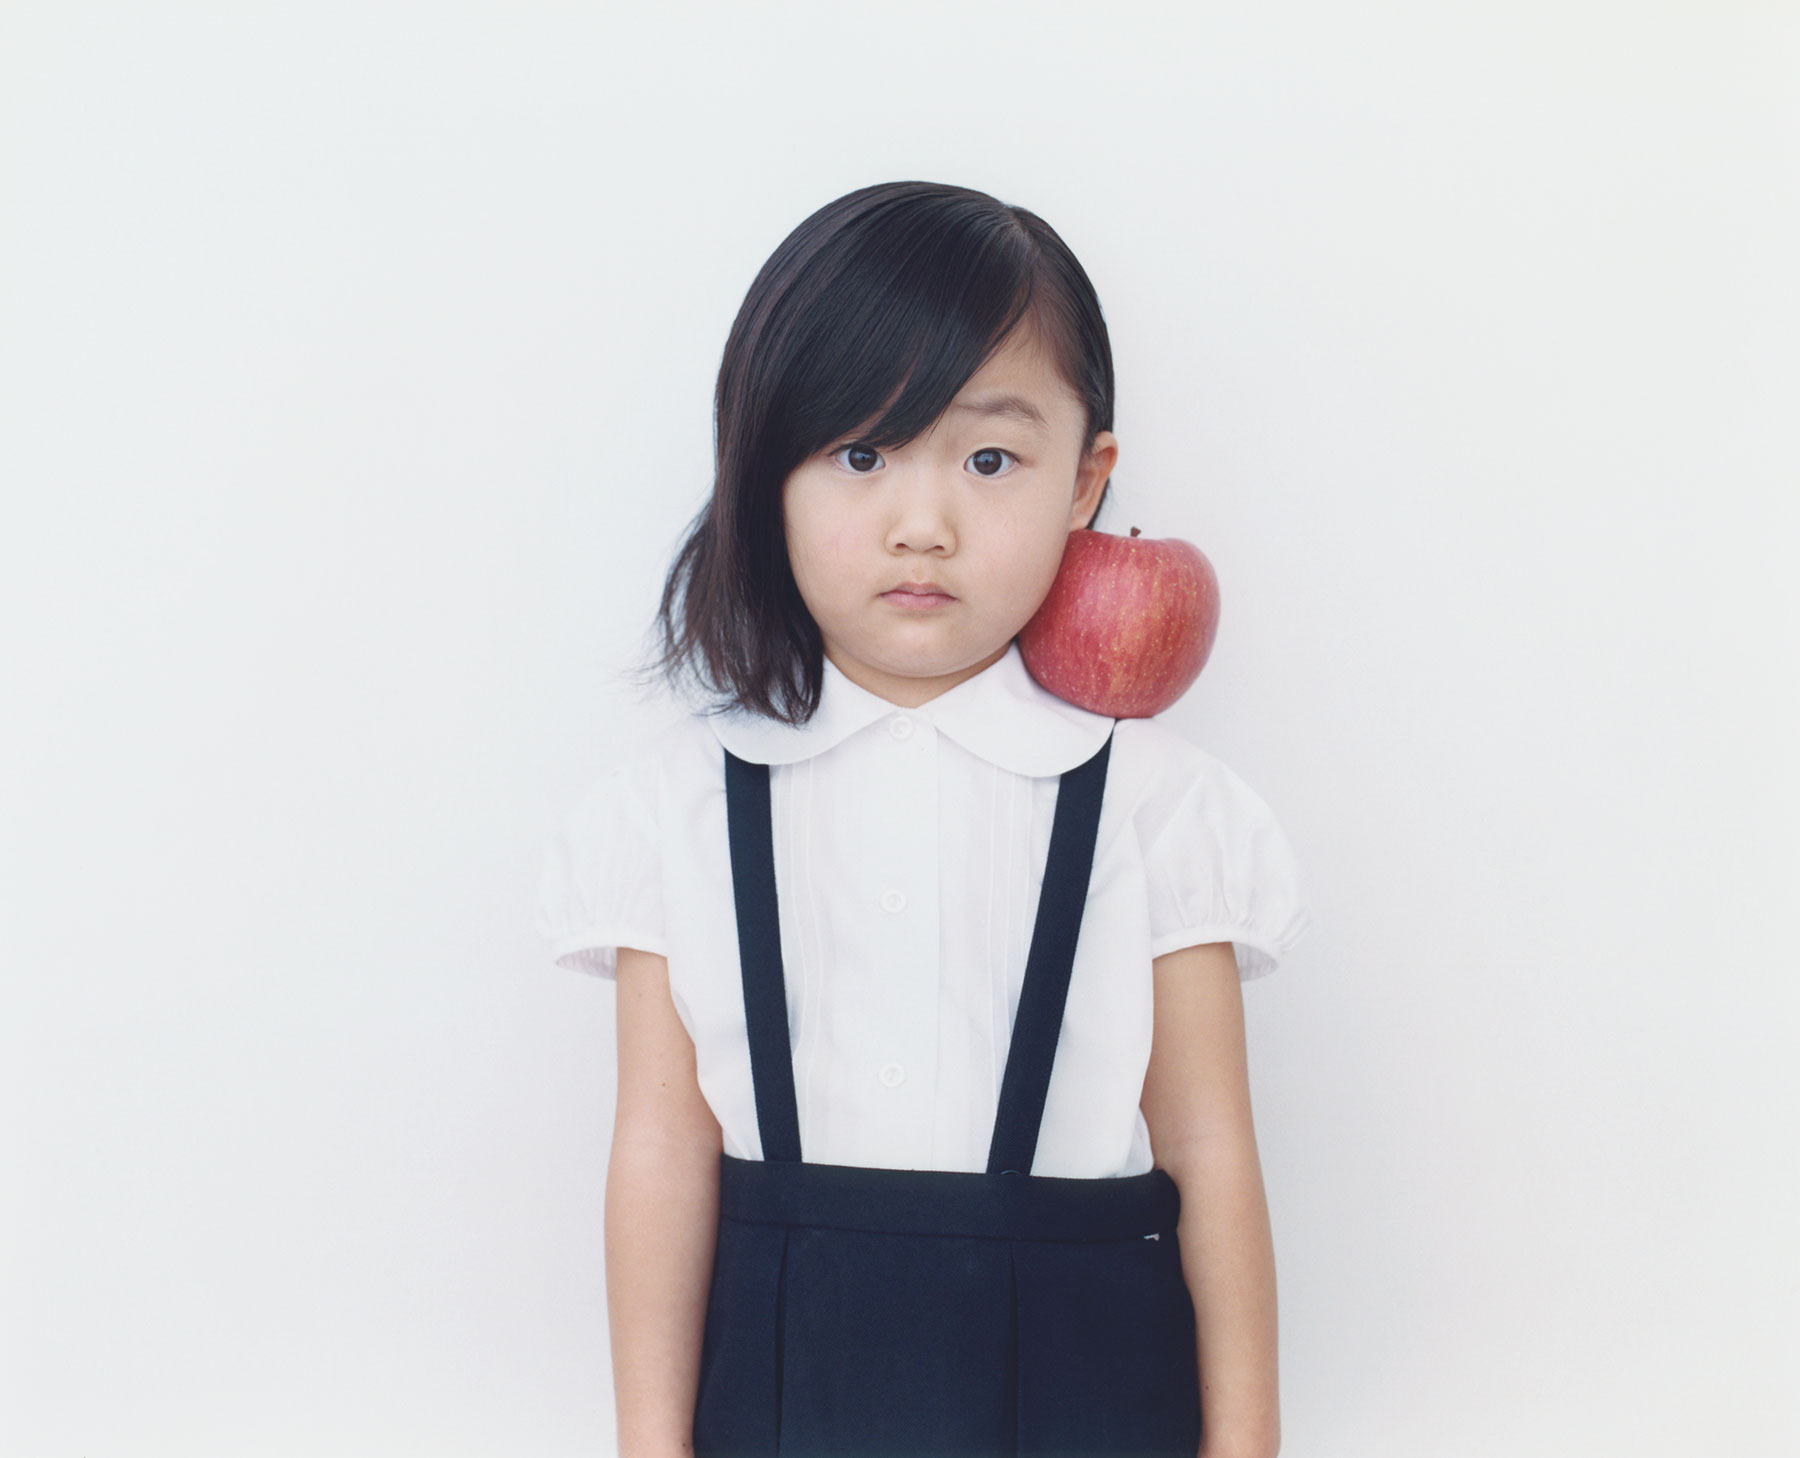 Osamu Yokonami,  1000 Children: Red Apple No. 14 , 2010-2013  Digital pigment print, 895 x 1105 mm (approx. 35 x 43.5 in), edition of 5; 146 x 168 mm (approx. 5.75 x 6.6 in), edition of 10   Inquire